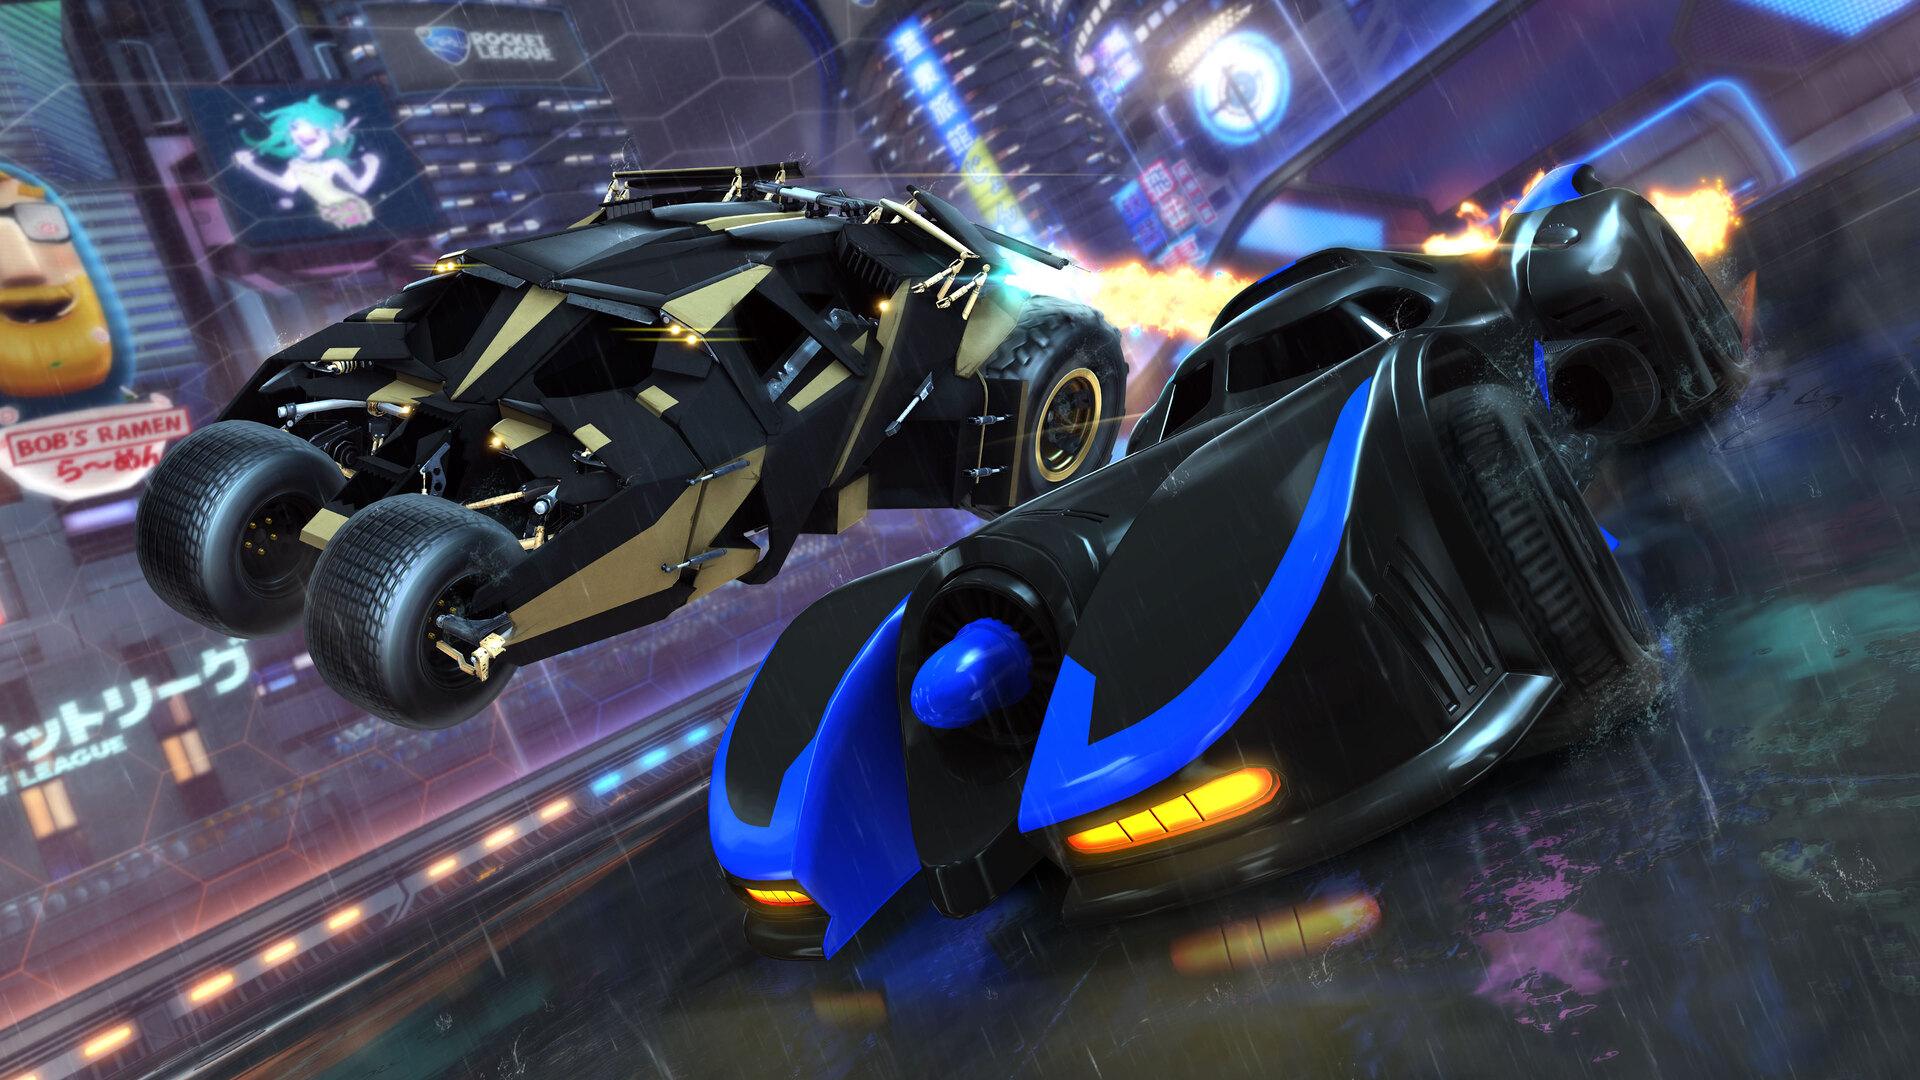 how to change rocket league resolution